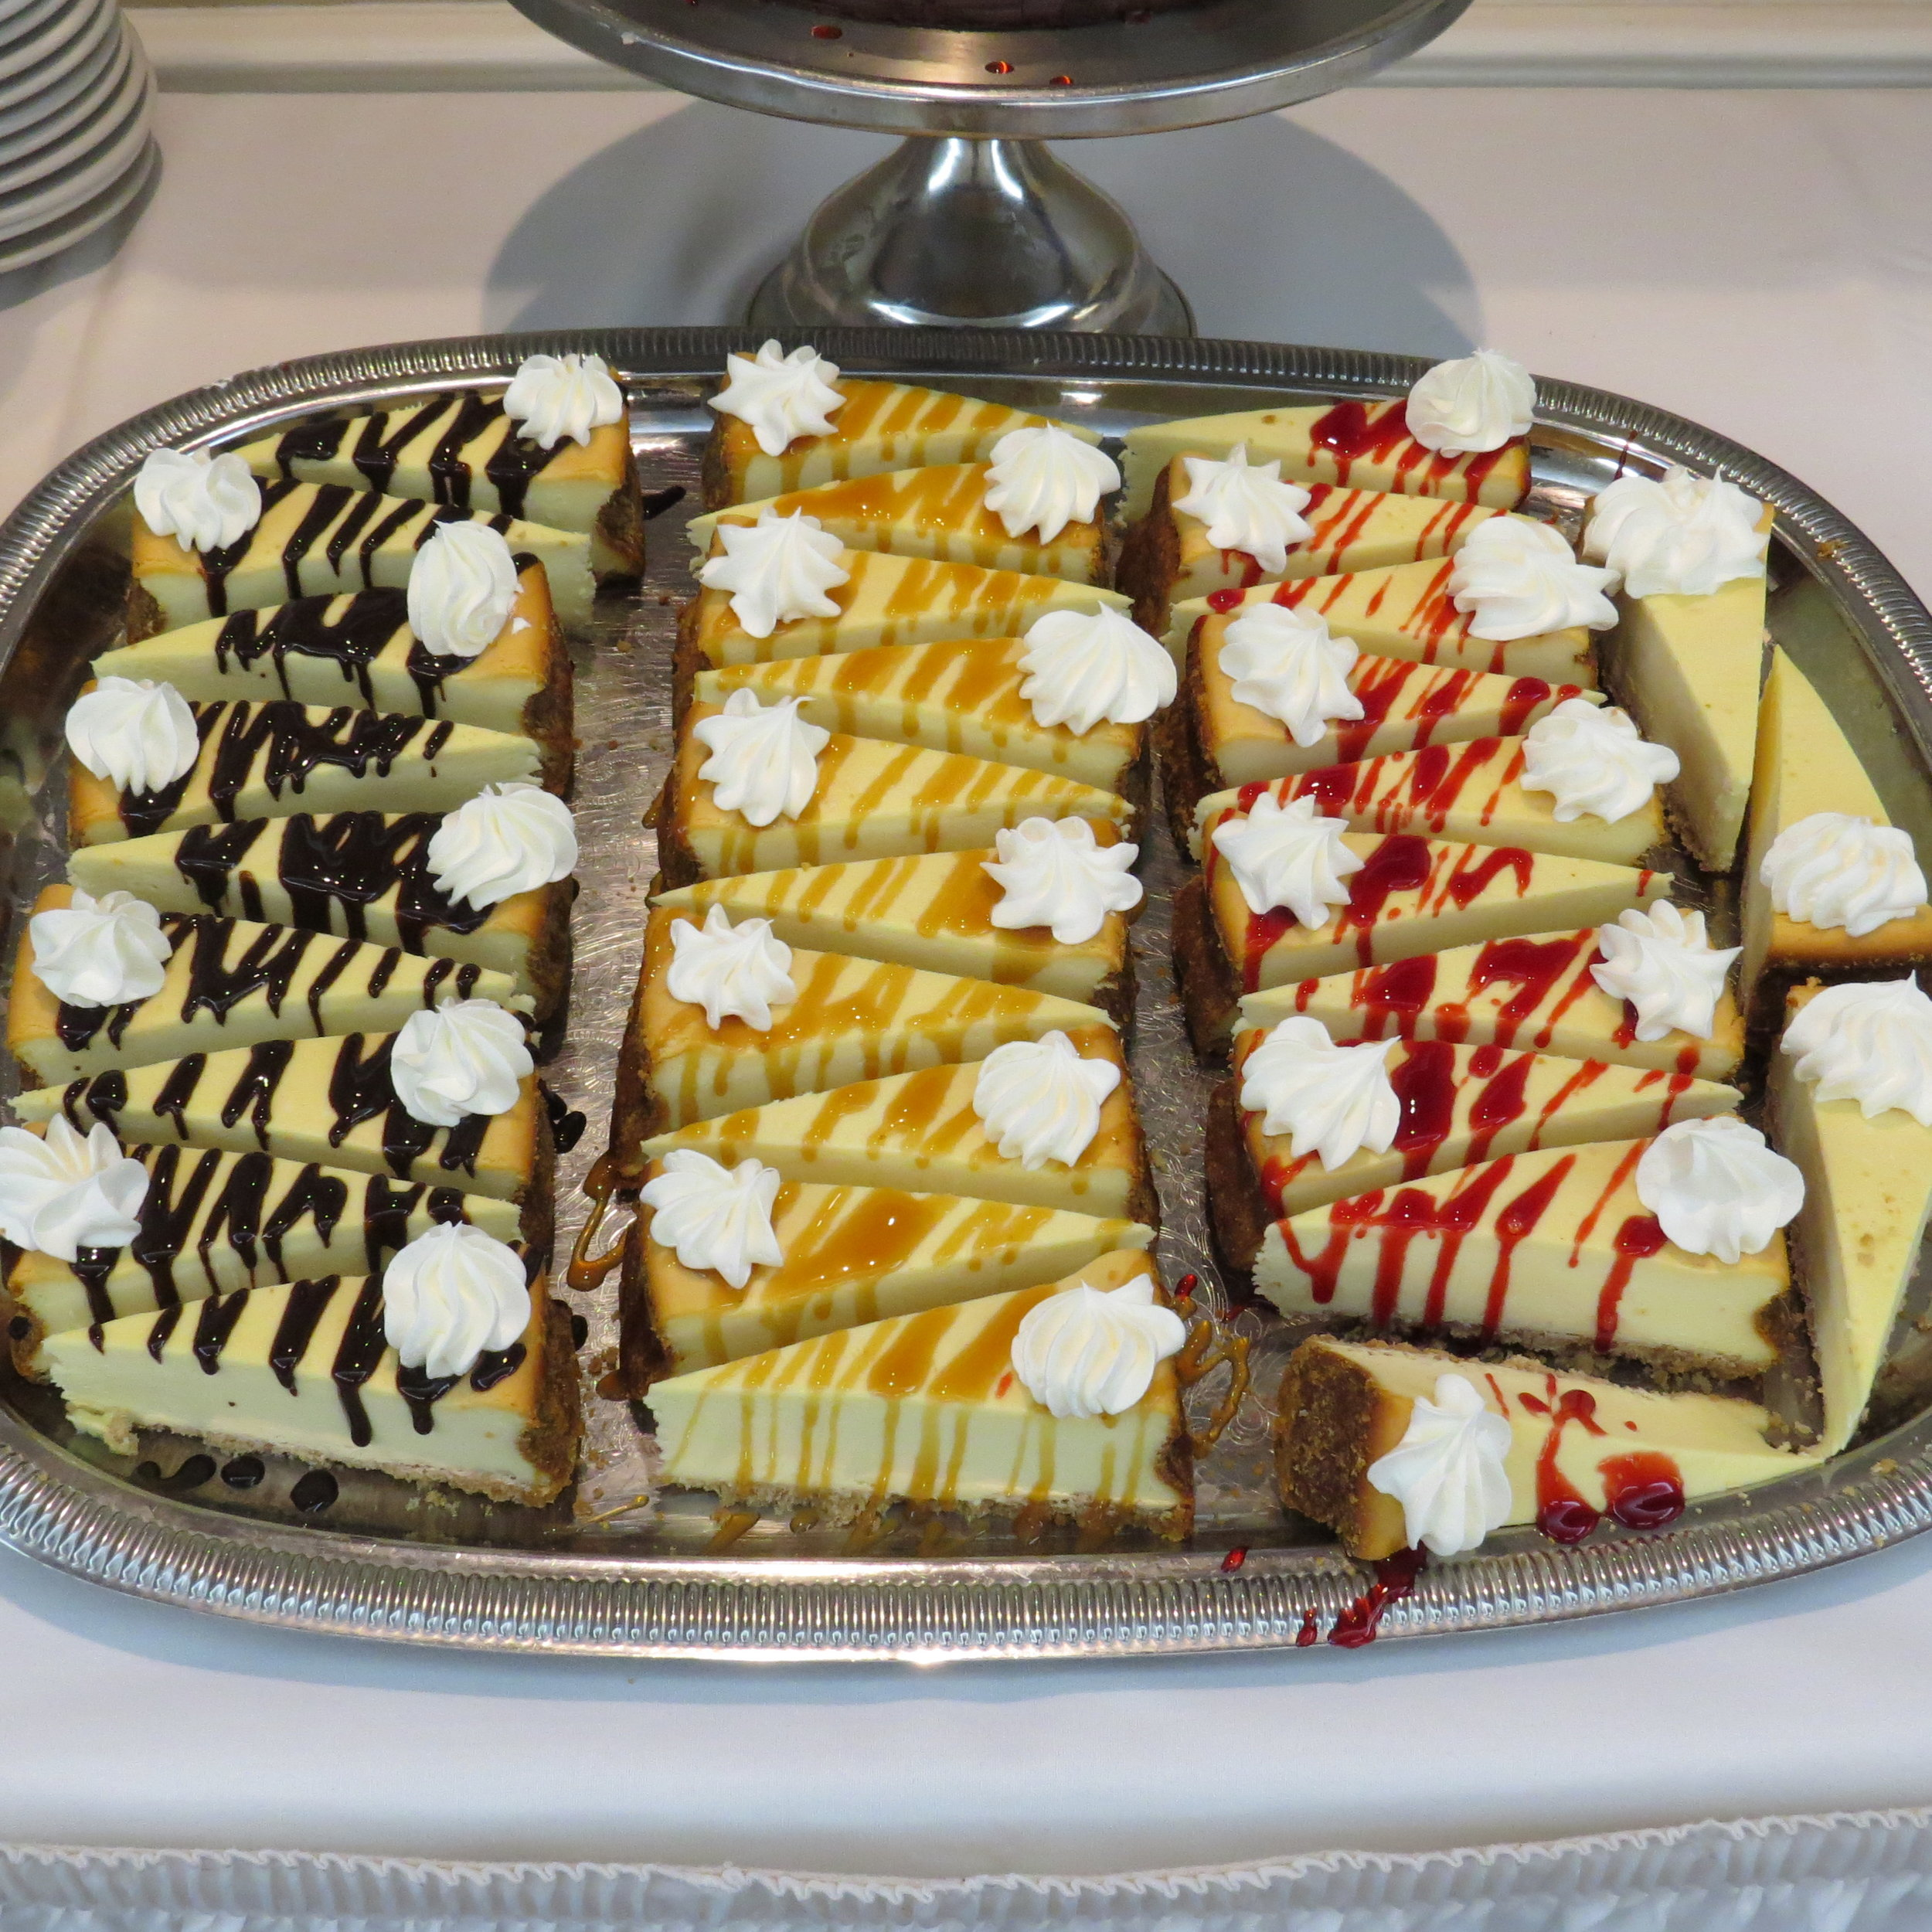 Cheese cake sampler